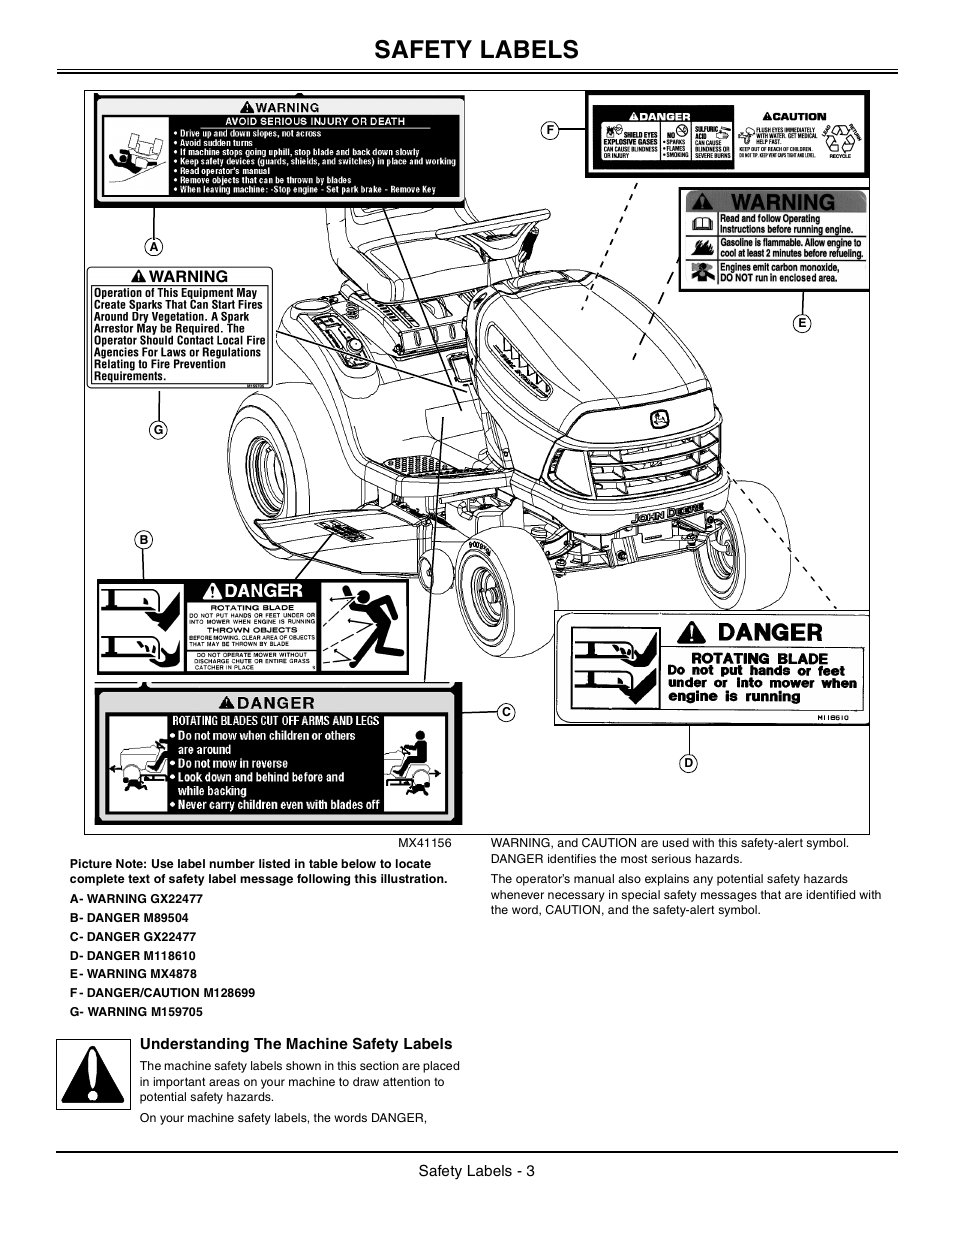 Understanding The Machine Safety Labels  Safety Labels